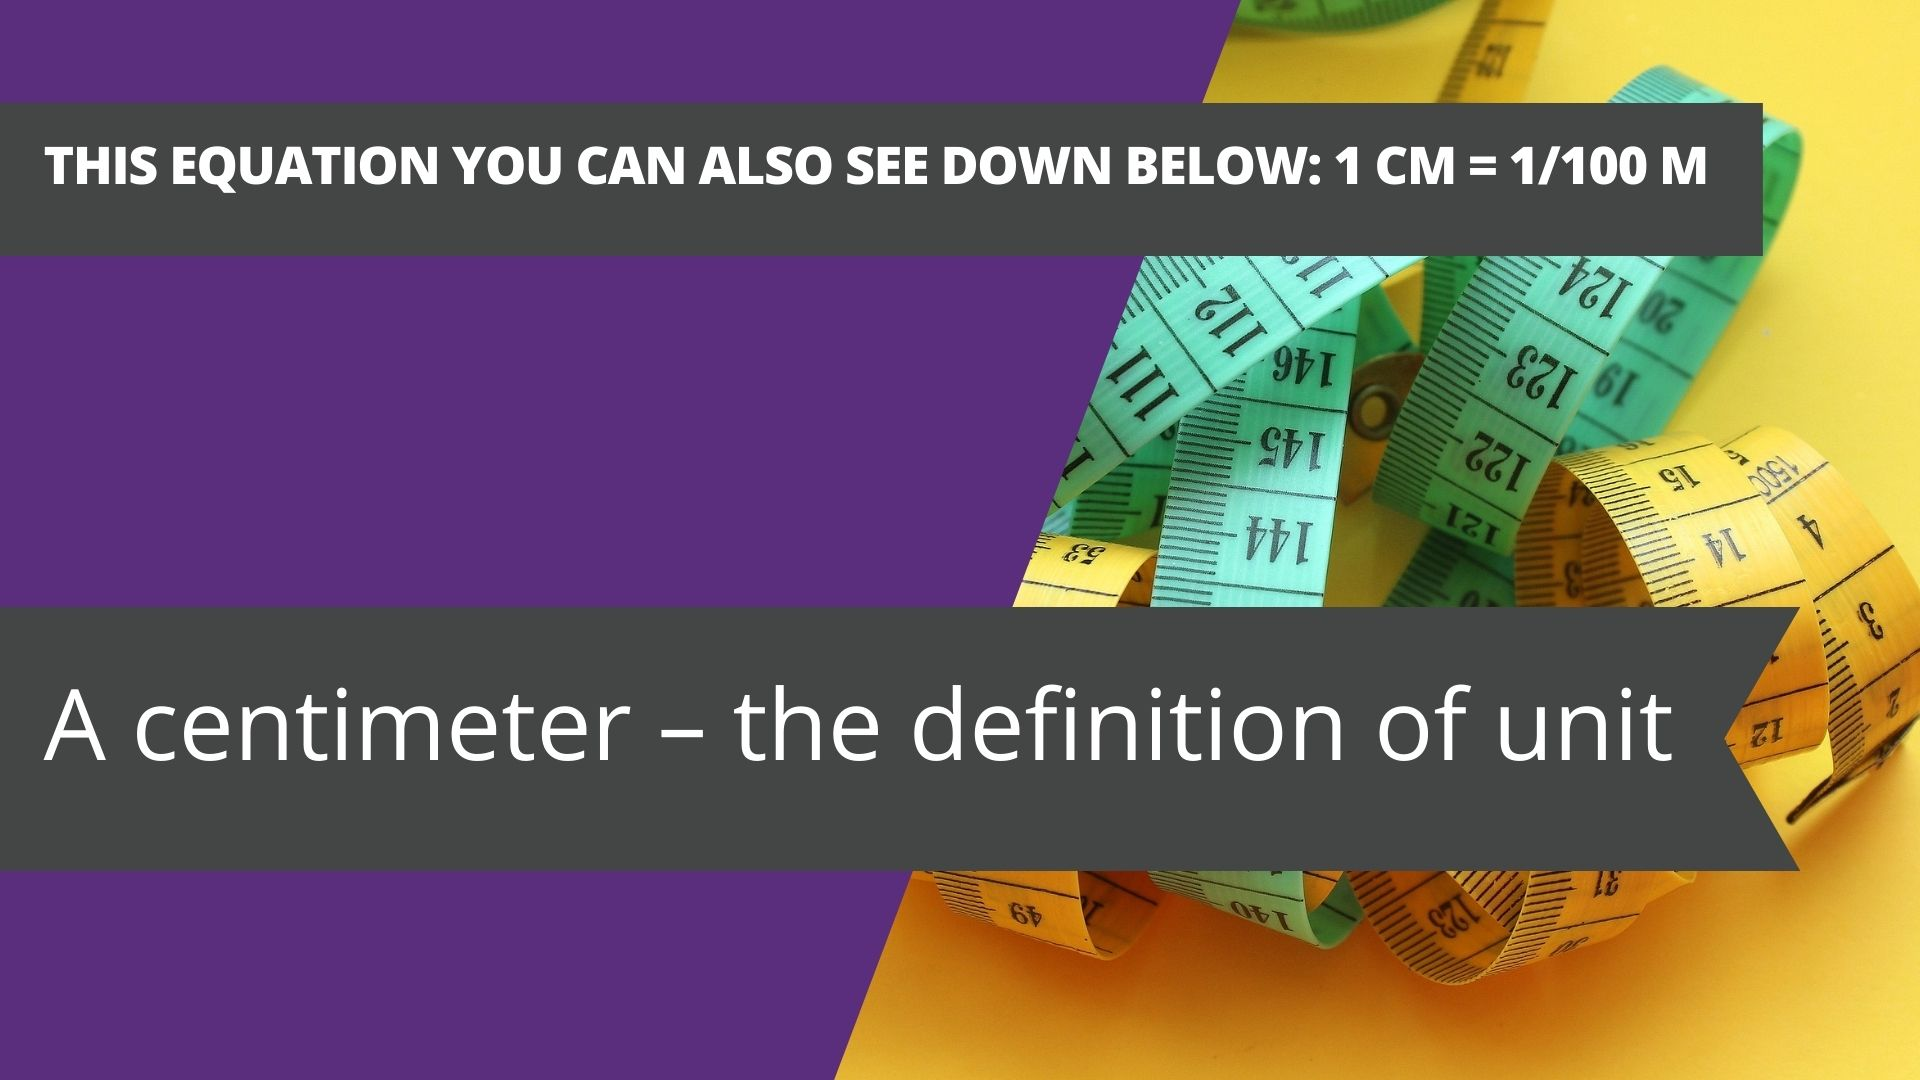 A centimeter – the definition of unit